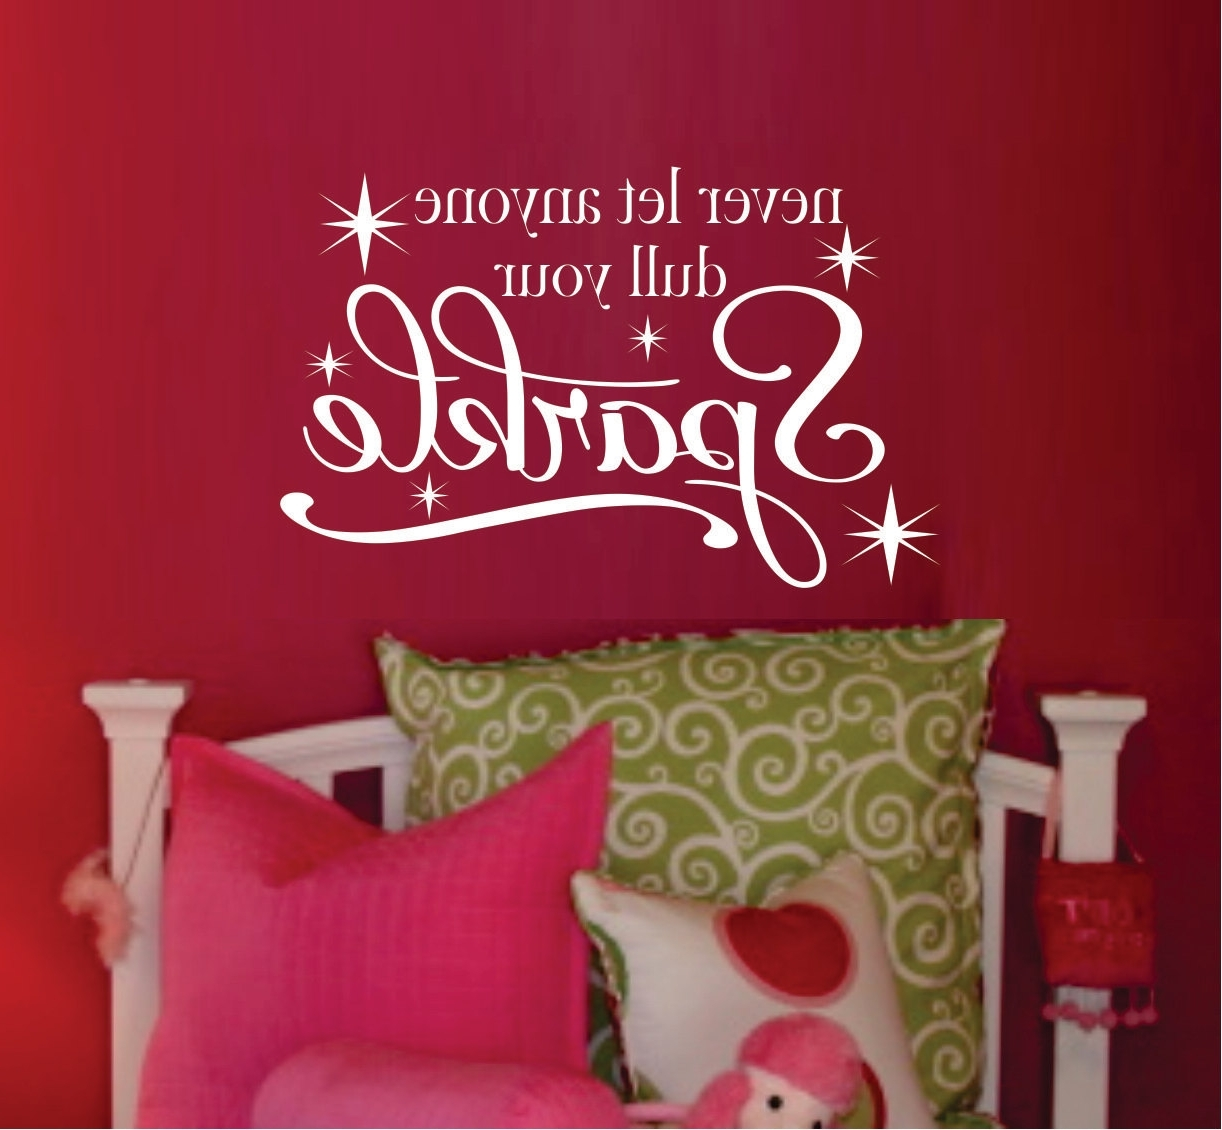 Fashionable Teen Girl Wall Decal u2013 Bedroom Vinyl Wall Decal u2013 Bathroom Vinyl With Regard To & Image Gallery of Wall Art For Teenage Girl Bedrooms (View 8 of 15 ...